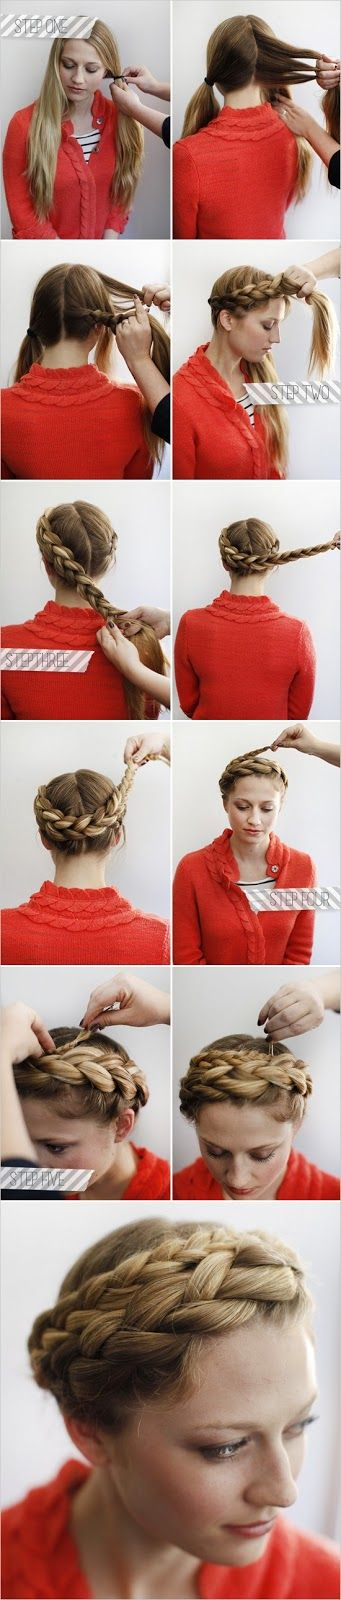 DIY Braid Halo - I wish I had the strength to grow my hair long enough to do things like this...  but my hair is VERY fine.  There is a TON of it but the longer it gets the worse/flatter it looks.